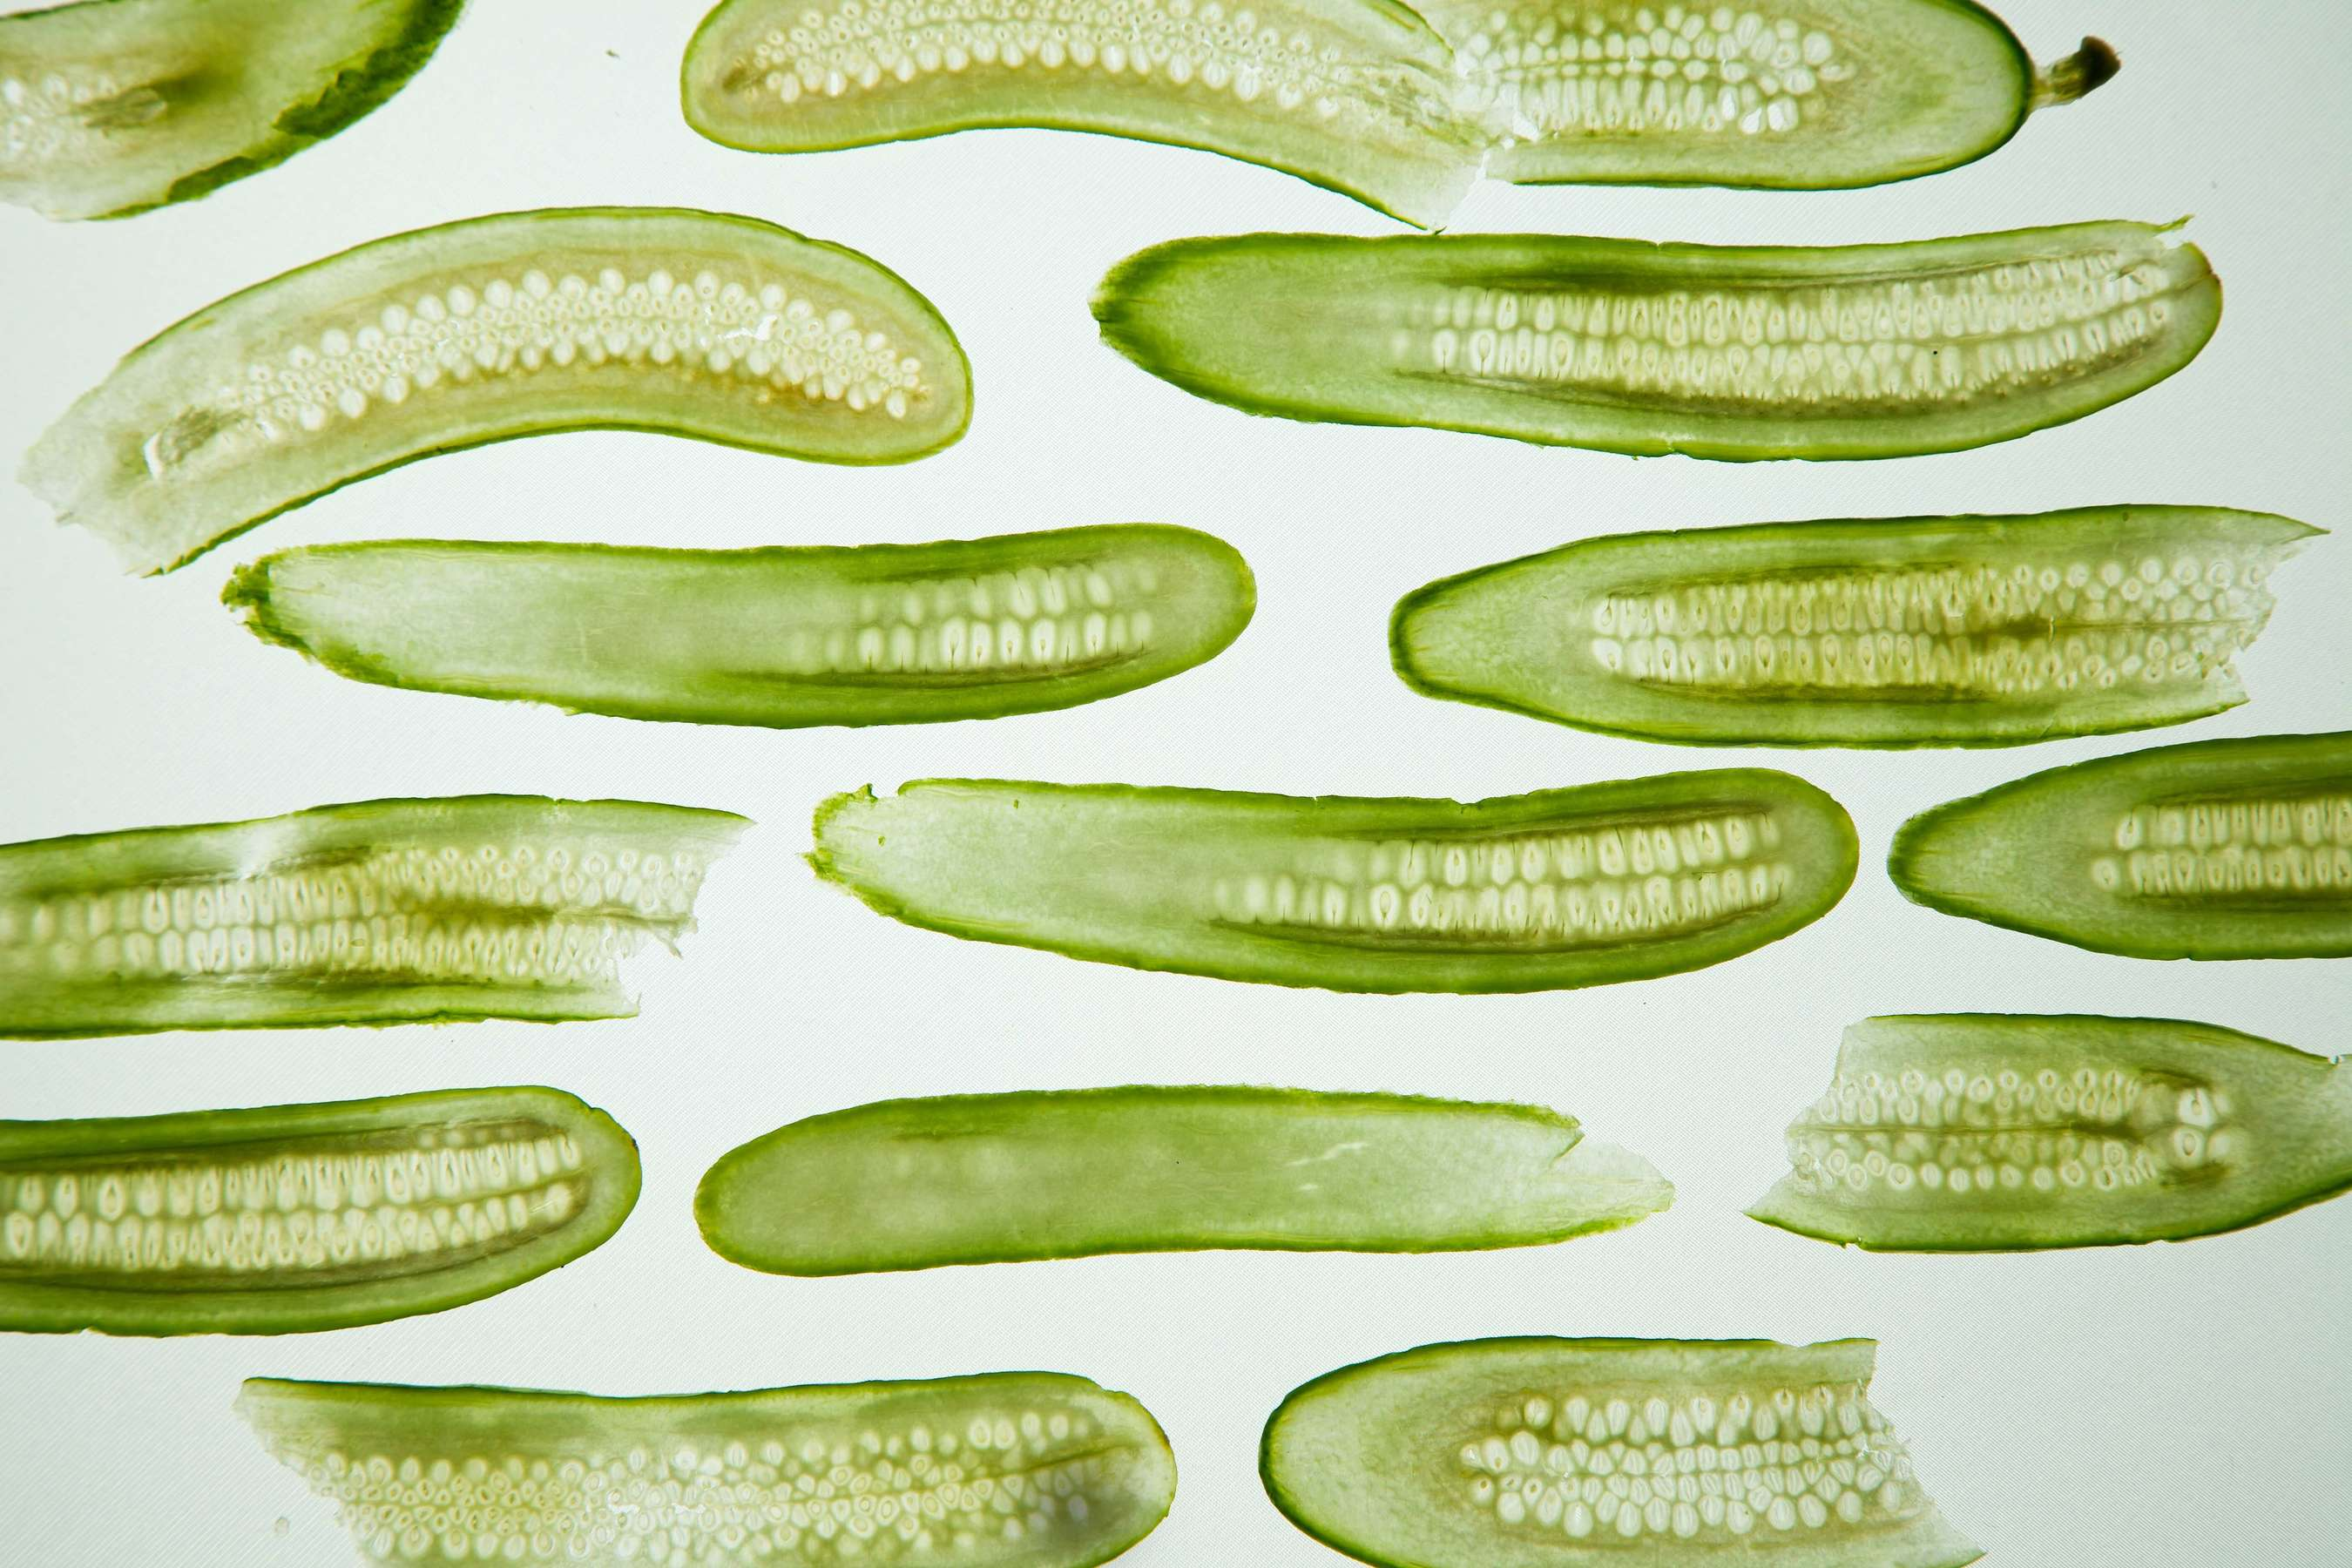 Cross sections of a cucumber, ready to be pickled